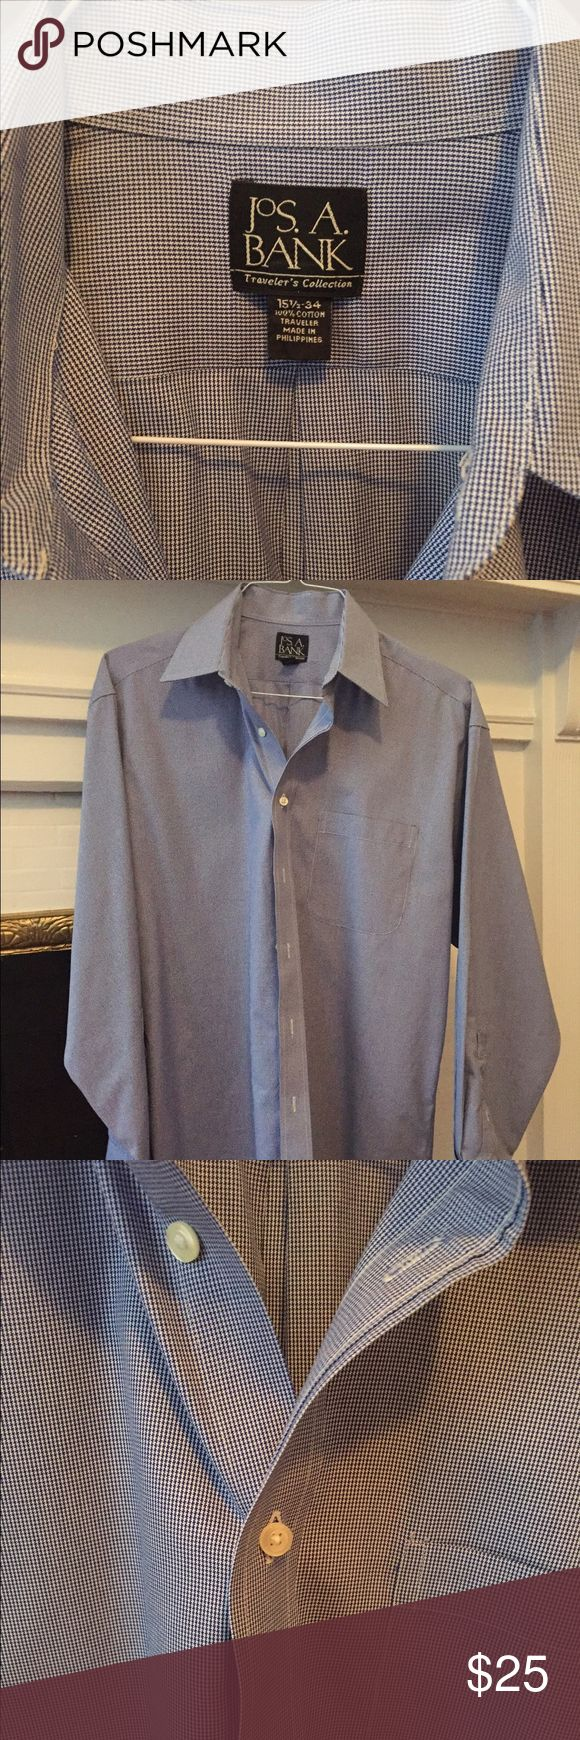 Jos A Bank size 15 1/2 neck 34 length arm. Joseph A Banks 15 1/2 neck and 34 arm length dress shirt. Worn once in perfect condition! Jos. A Bank Shirts Dress Shirts